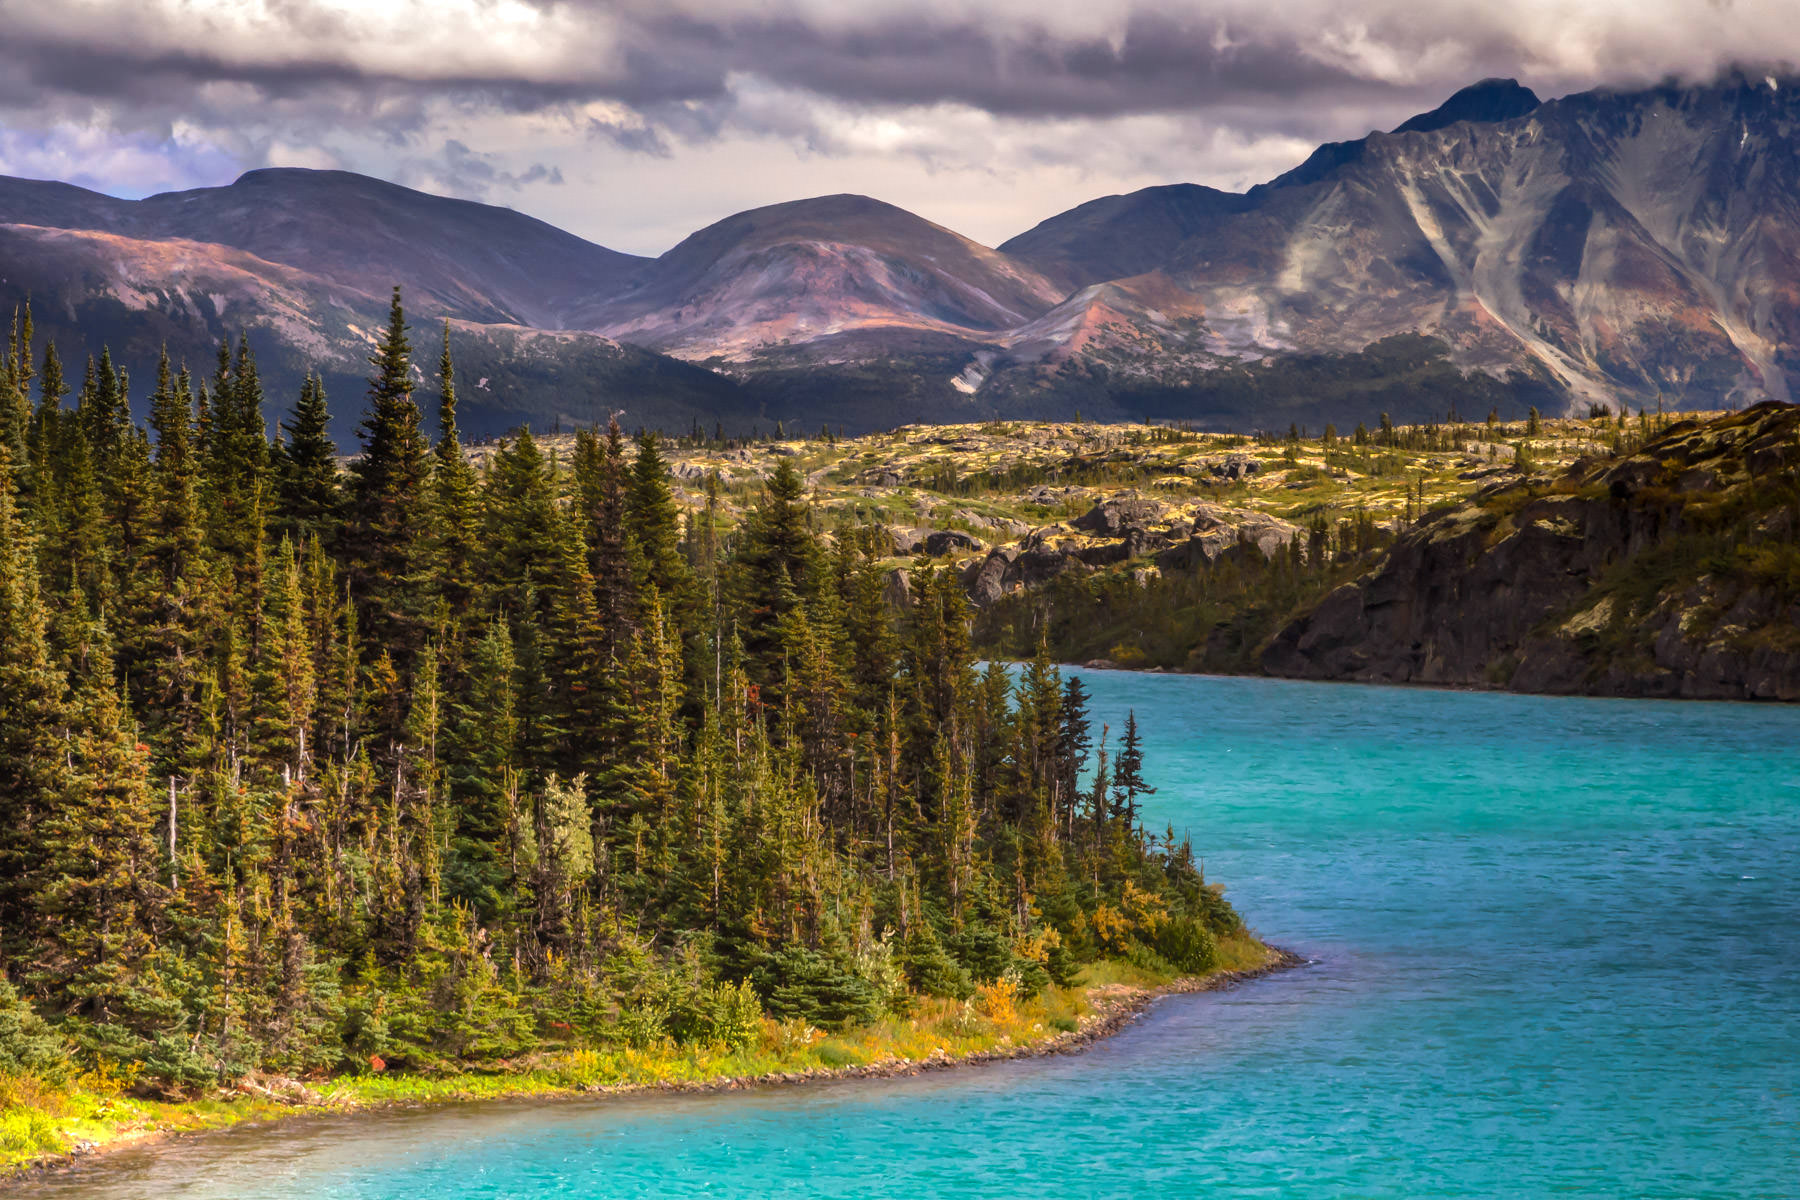 British Columbia's Bernard Lake, surrounded by towering pine trees and mountains along the Klondike Highway.